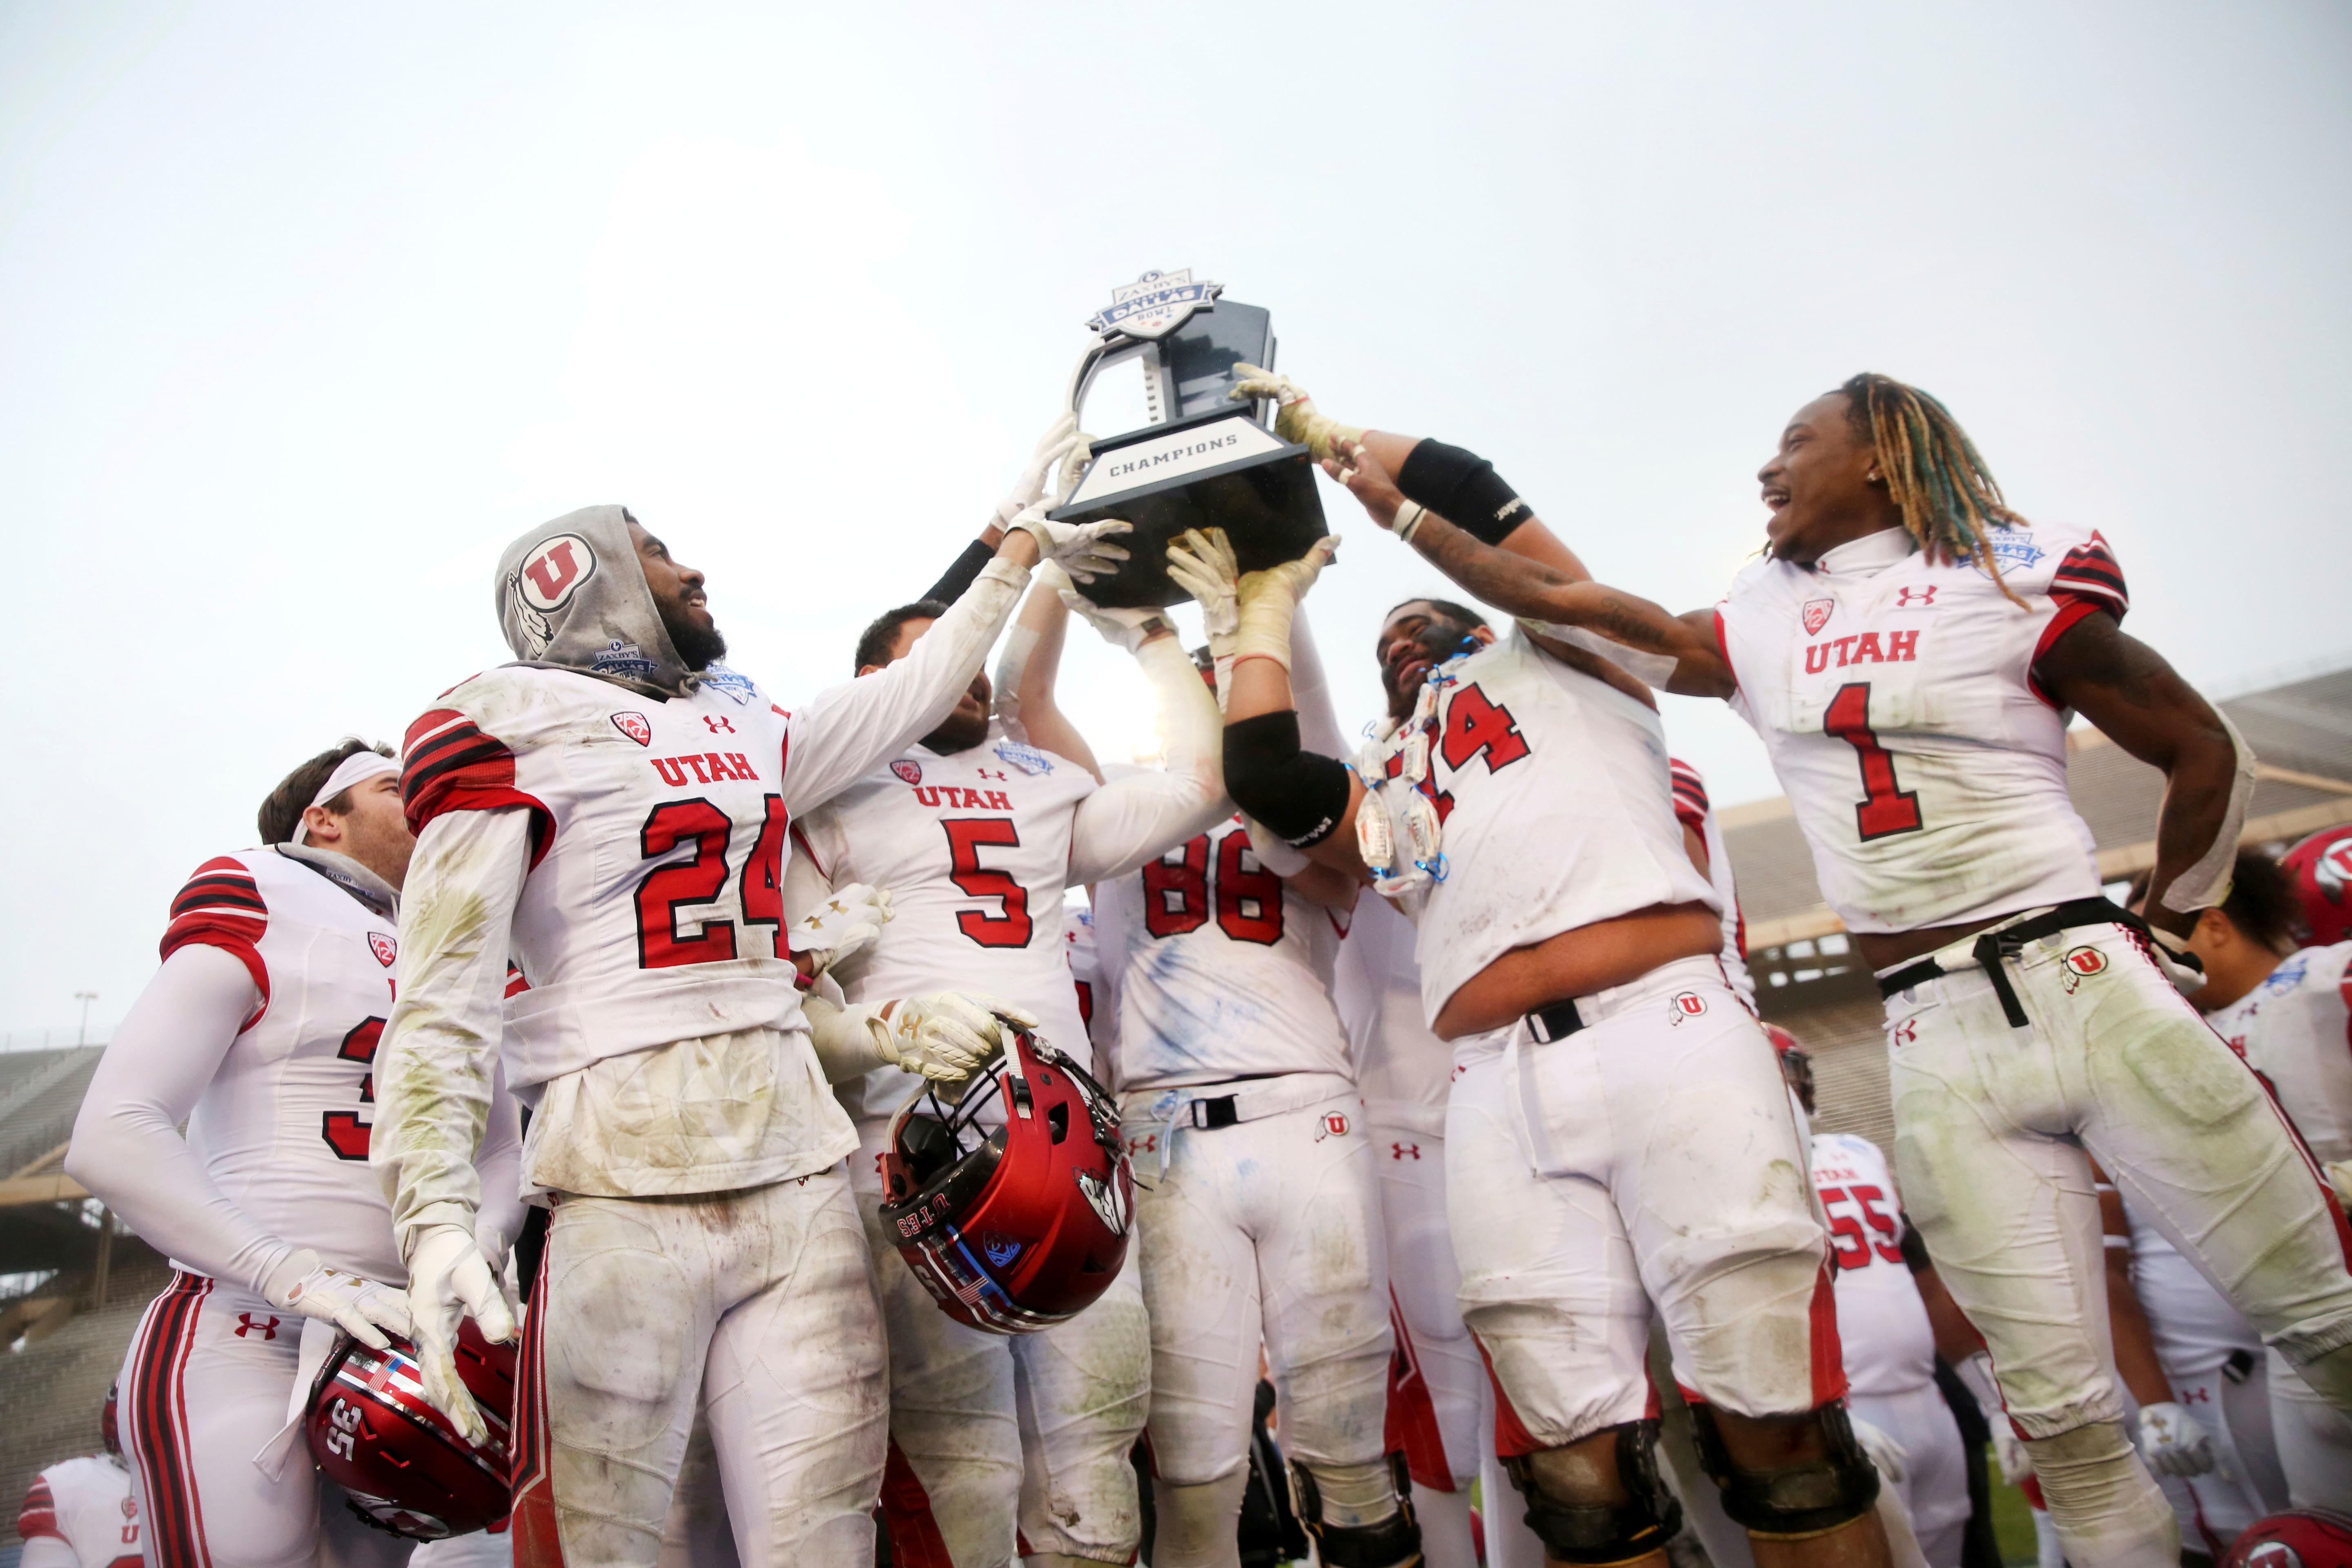 Utah football players hold up their championship trophy after winning the Zaxby's Heart of Dallas Bowl against West Virginia at Cotton Bowl Stadium in Dallas on Tuesday, Dec. 26, 2017. Utah won 30-14. (Rose Baca/The Dallas Morning News via AP)